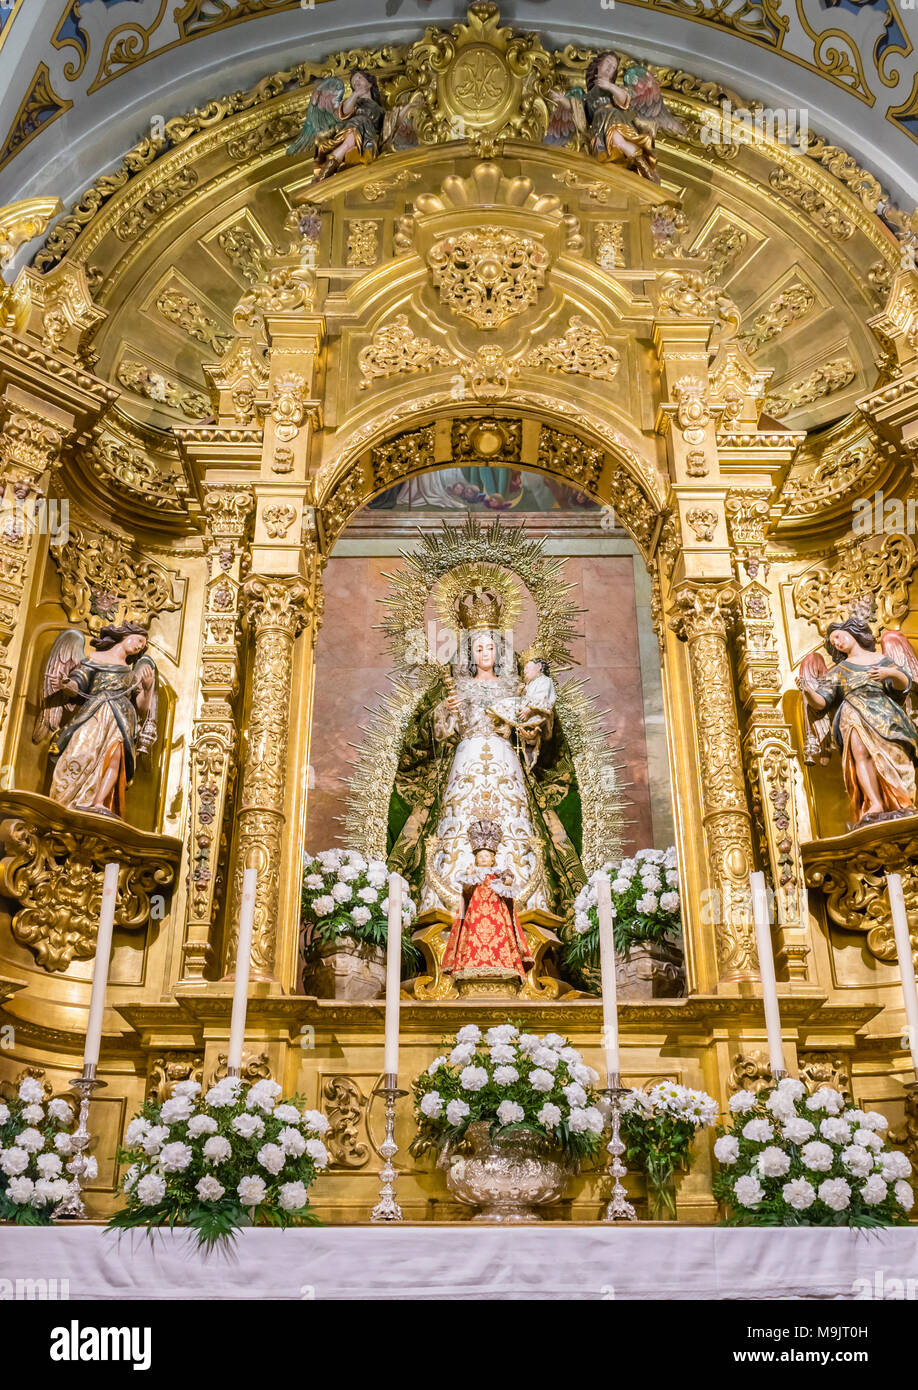 The 'Chapel of our Lady the holy Rosary' in the 'Basilica de la Macarena' (Church of the Macarena) in the Spanish city of Seville, Andalusia, Spain - Stock Image